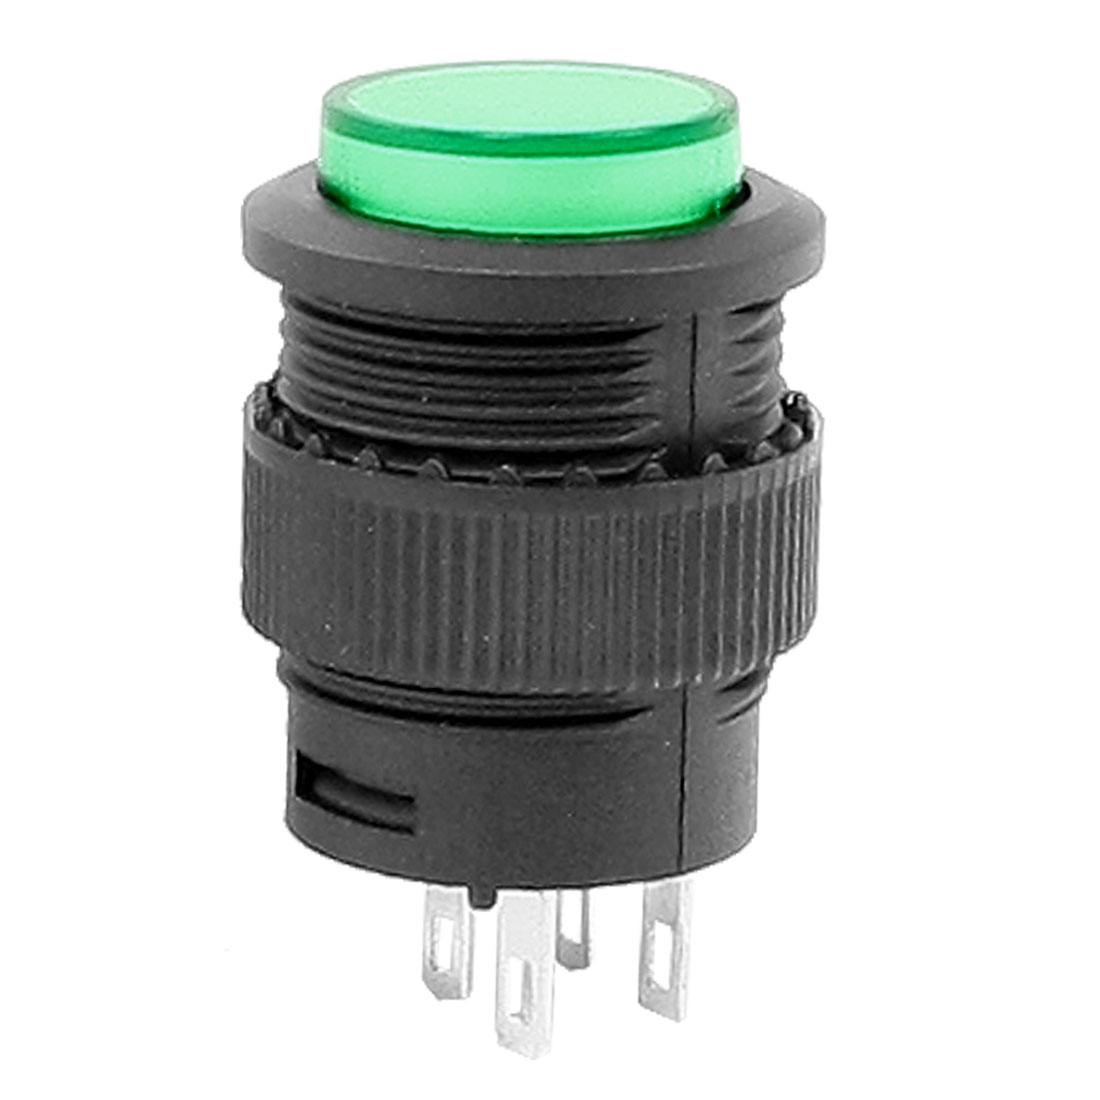 DPDT Green Round 4 Terminal Momentary Push Button Switch AC 250V 1.5A 125V 3A